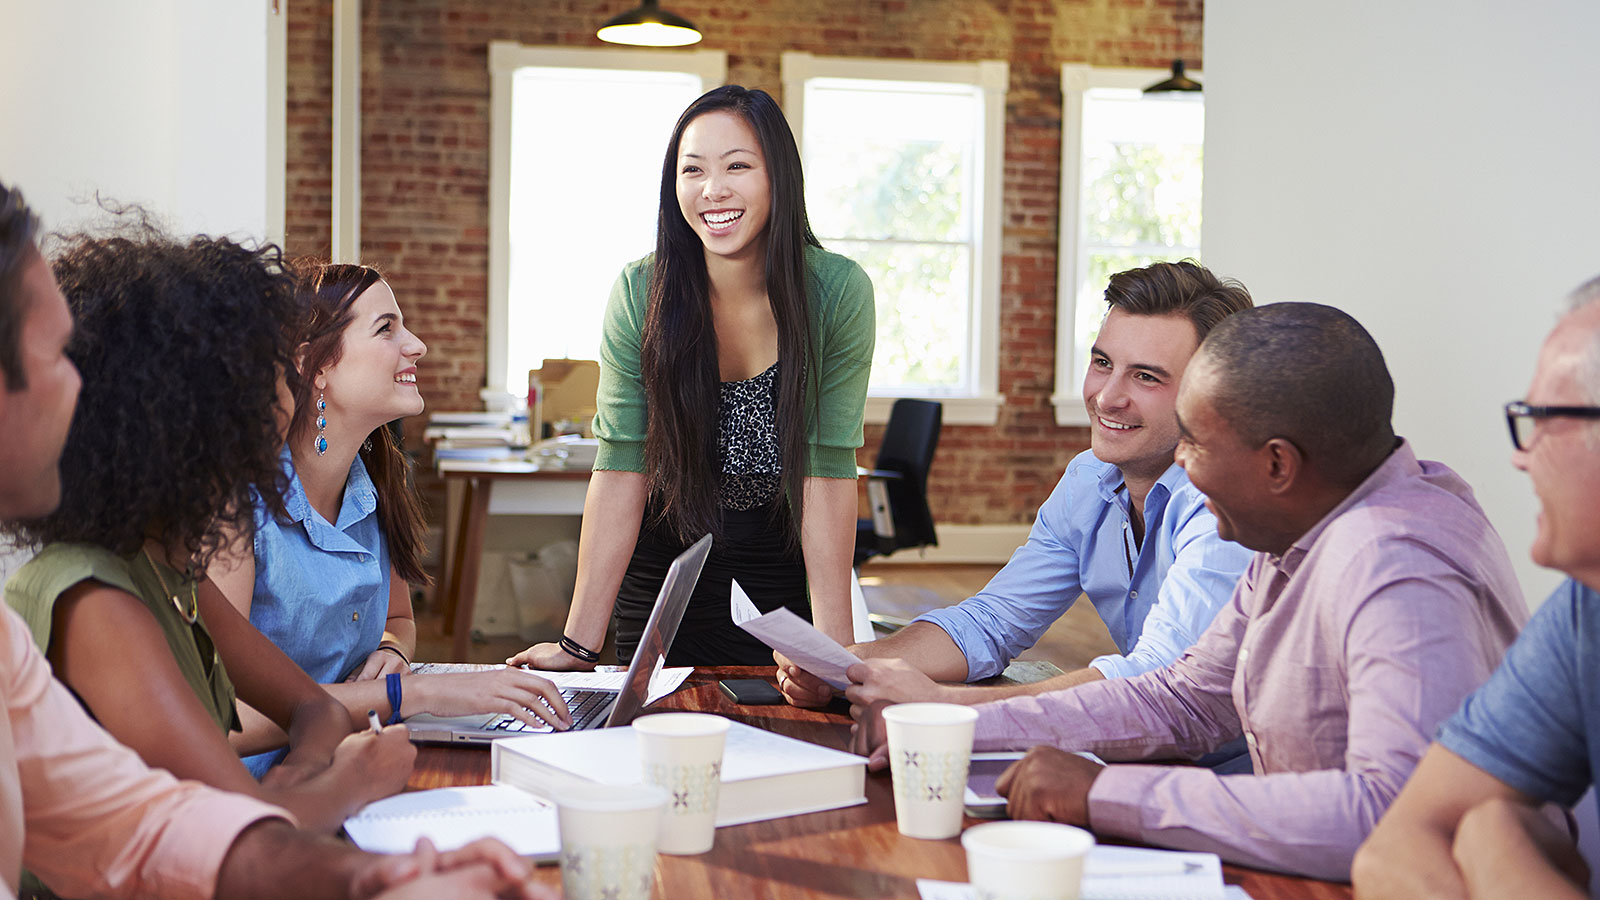 5 ways for workplaces to support employee happiness